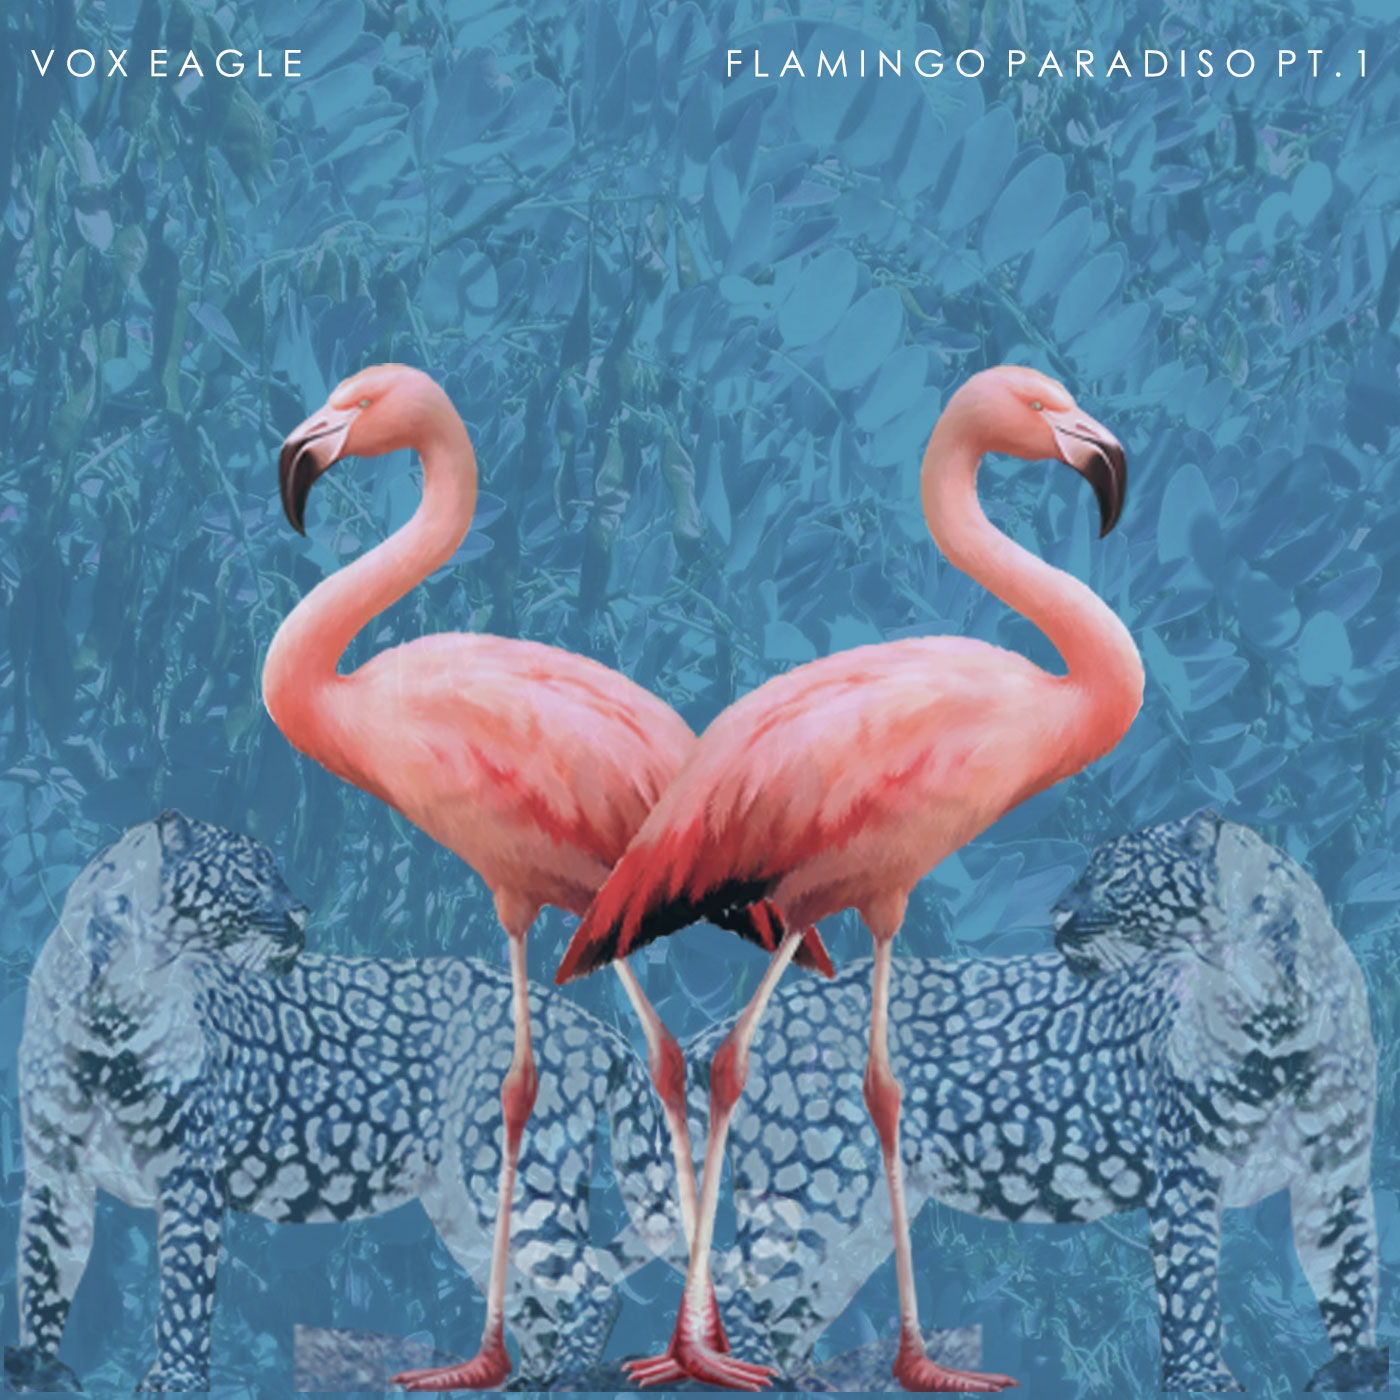 Flamingo Paradiso Pt. 1 - Vox Eagle